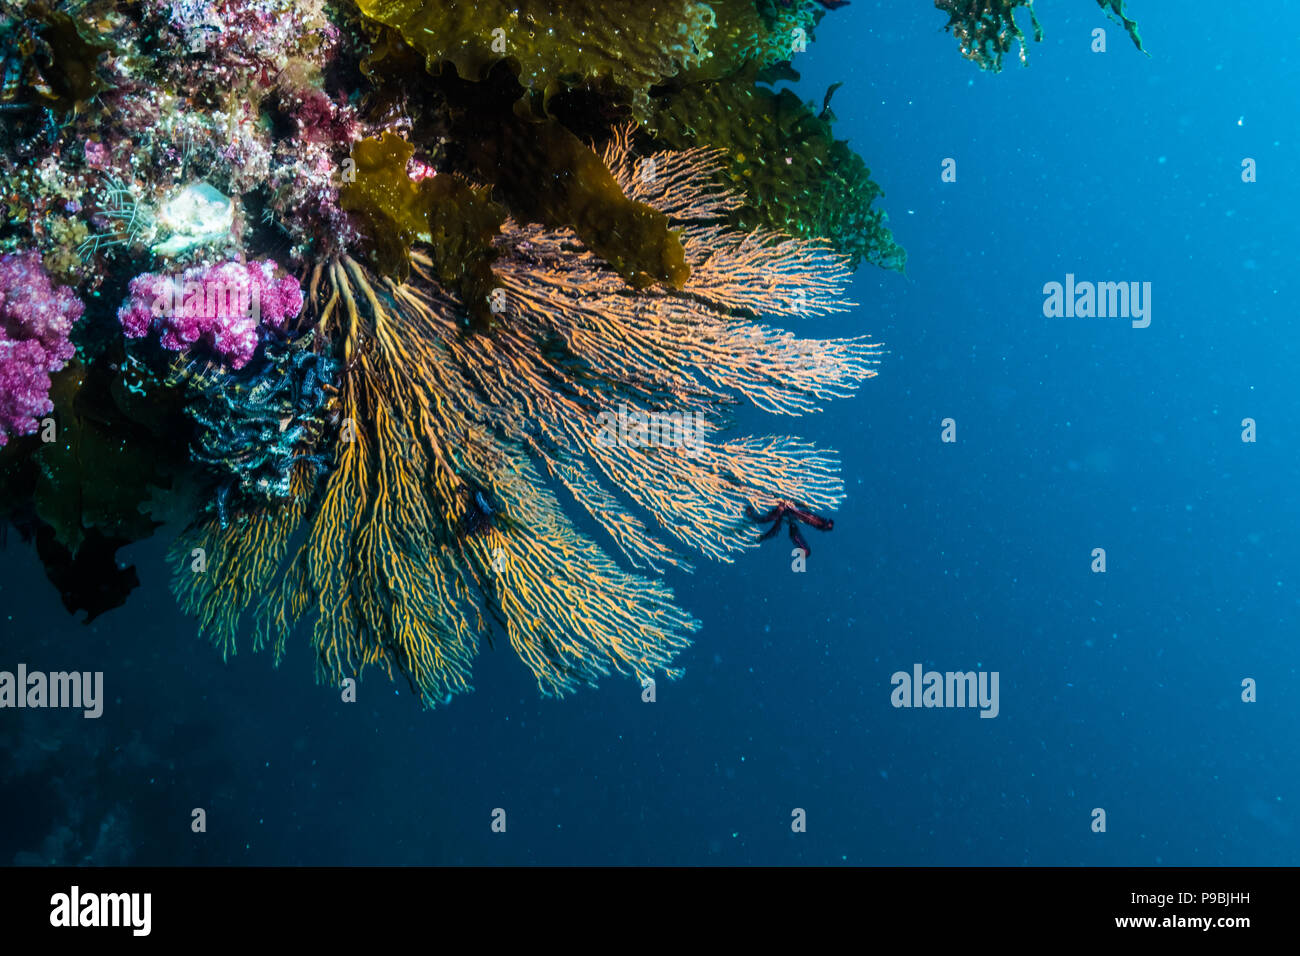 A sea fans at the adge of rocky reef. -18m. Owase, Mie, Japan - Stock Image